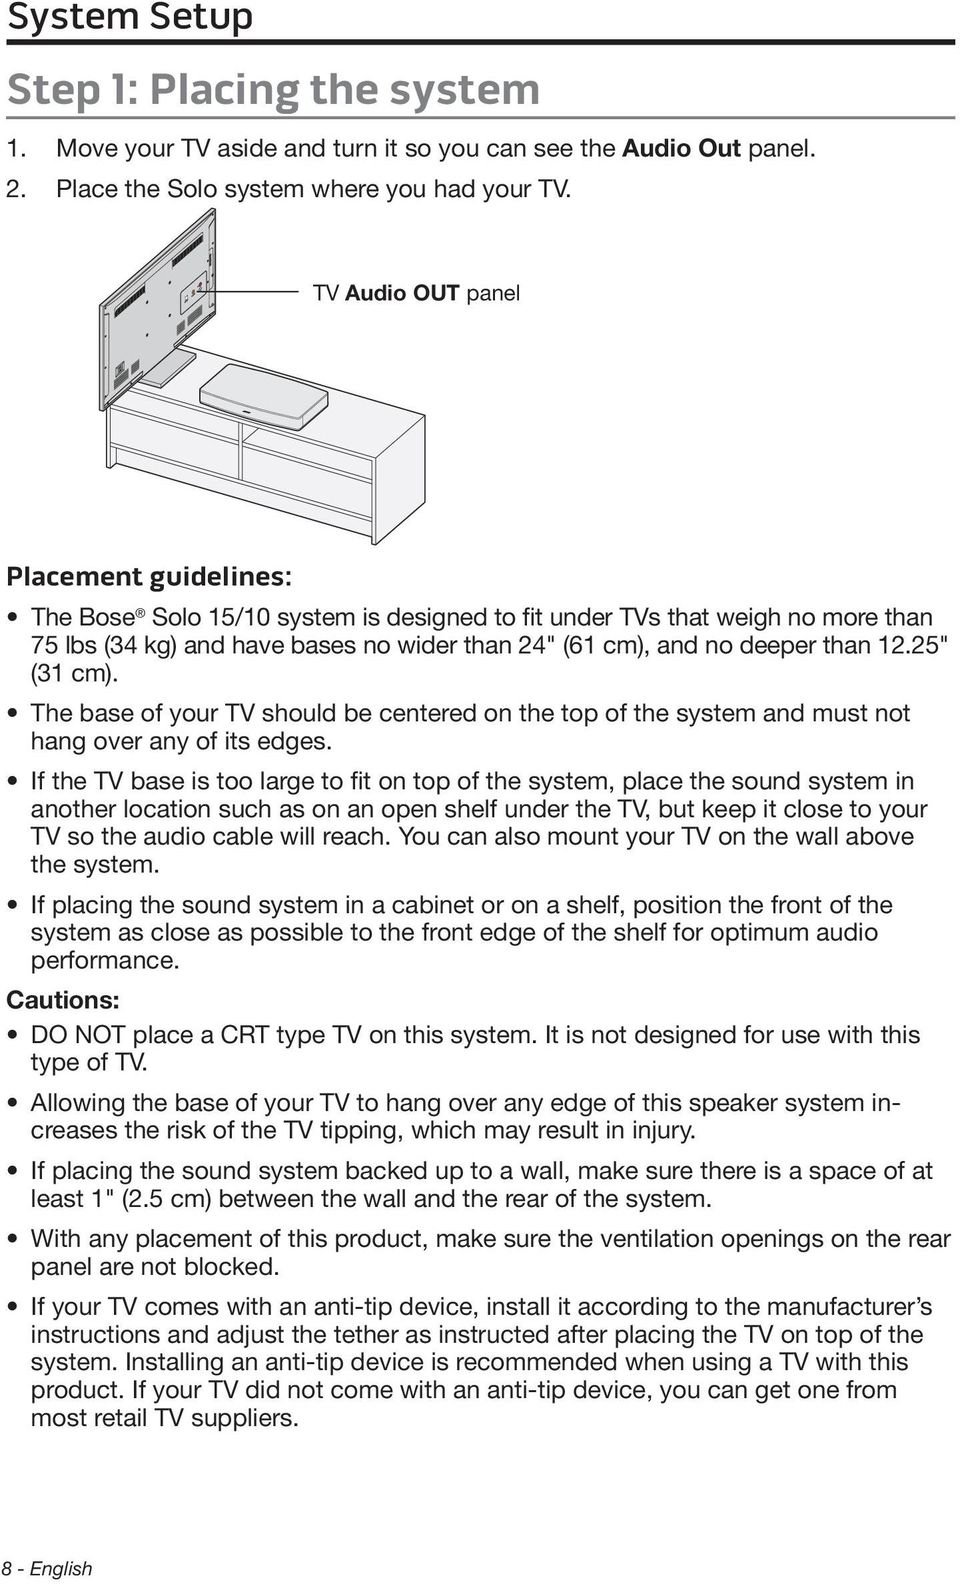 "25"" (31 cm). The base of your TV should be centered on the top of the system and must not hang over any of its edges."